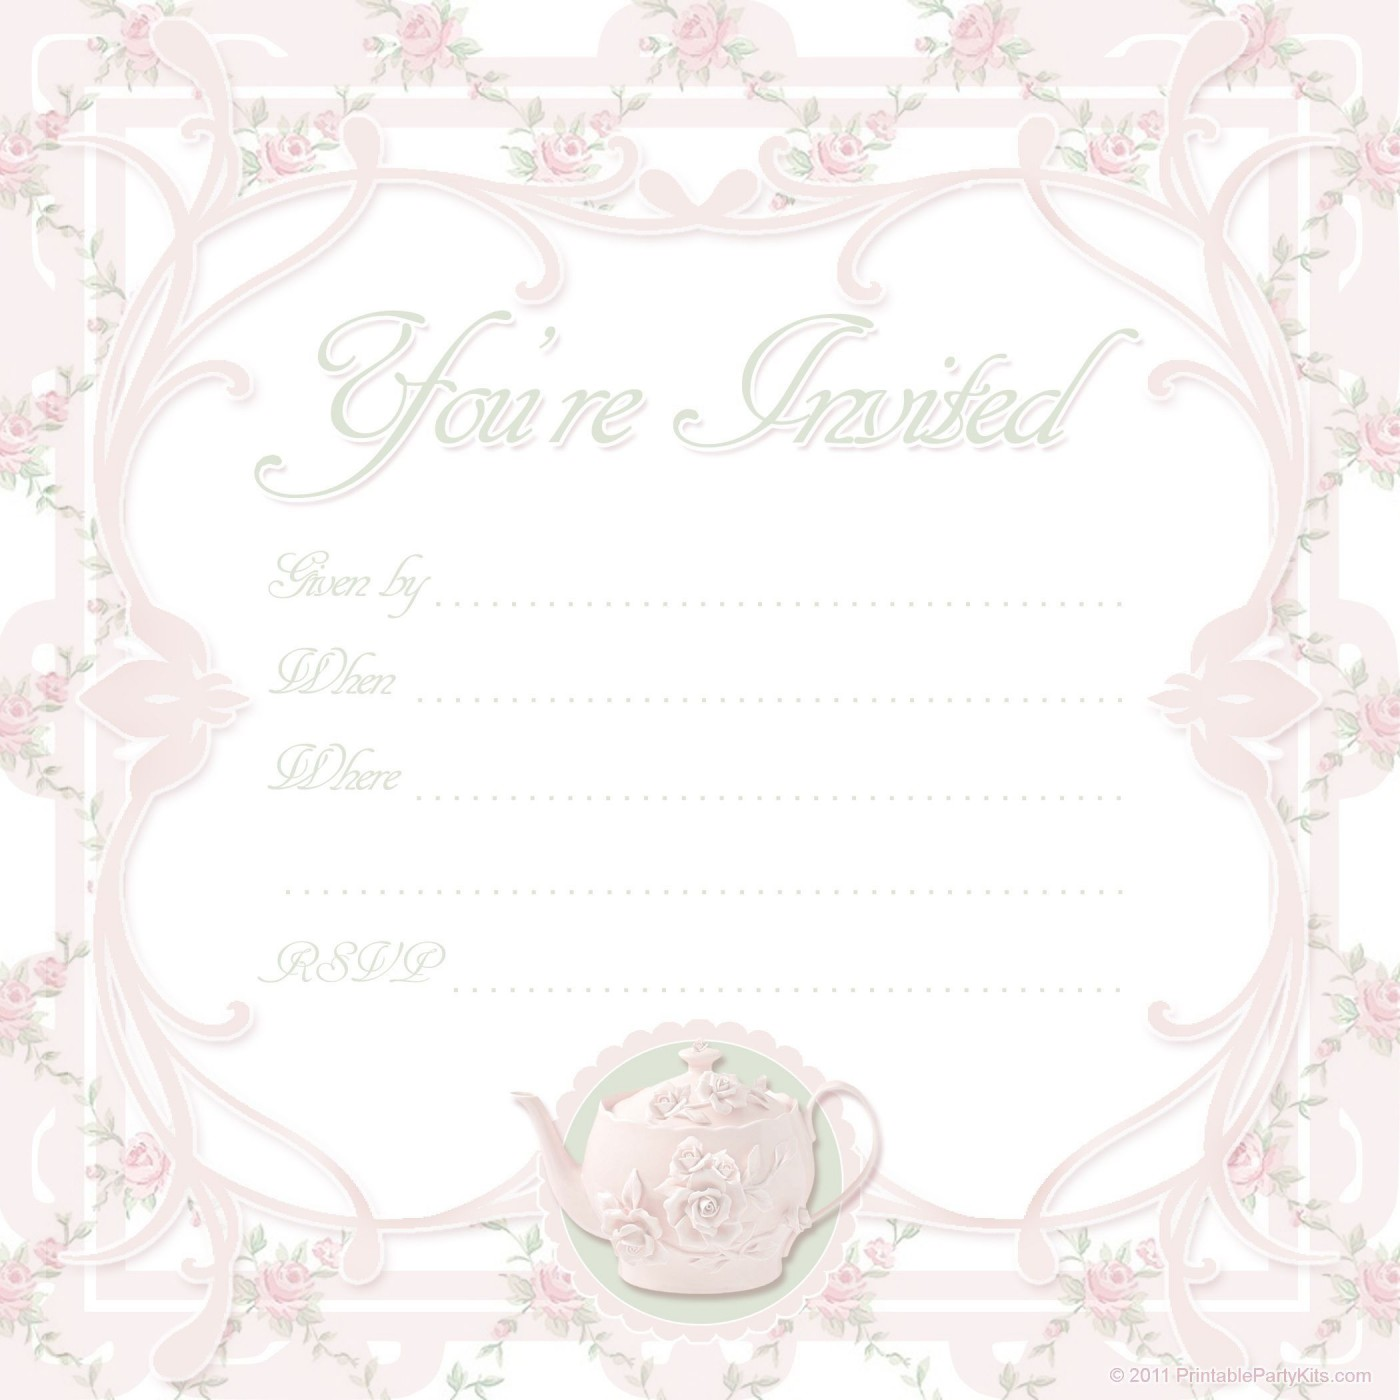 000 Unbelievable Tea Party Invitation Template Free Sample  Vintage Princes Printable1400